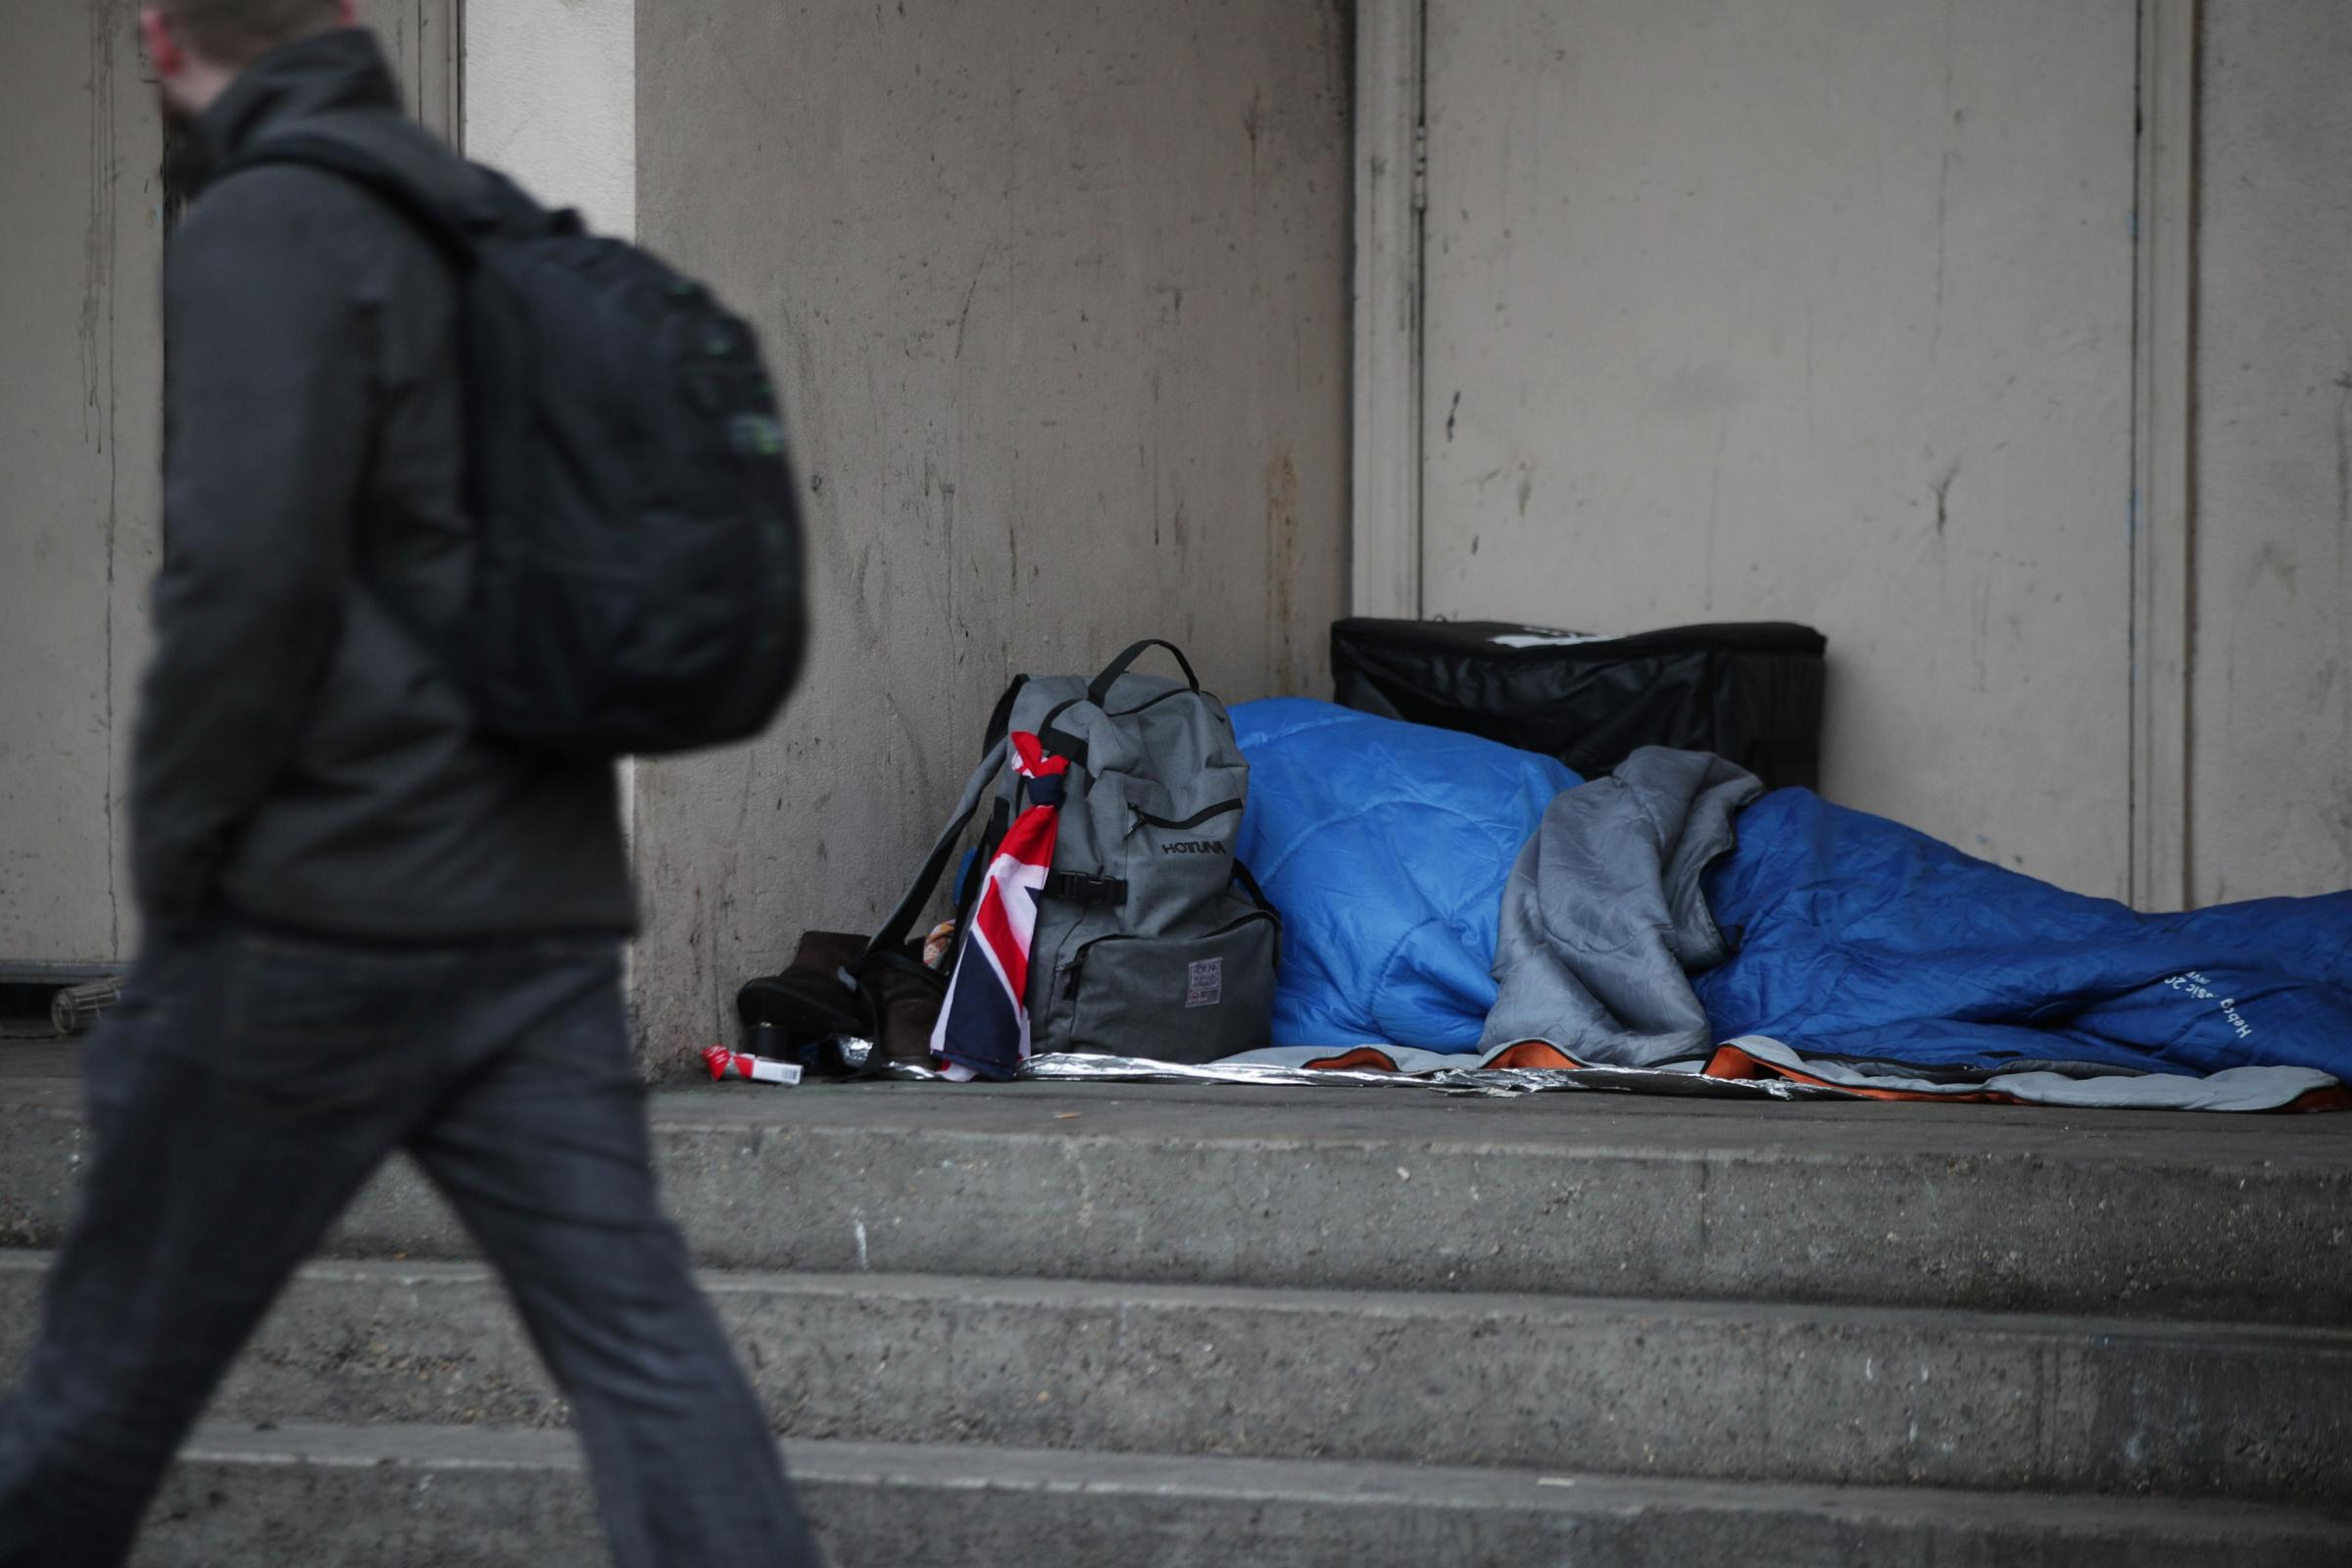 More than 1,000 people were homeless in West Dunbartonshire last year